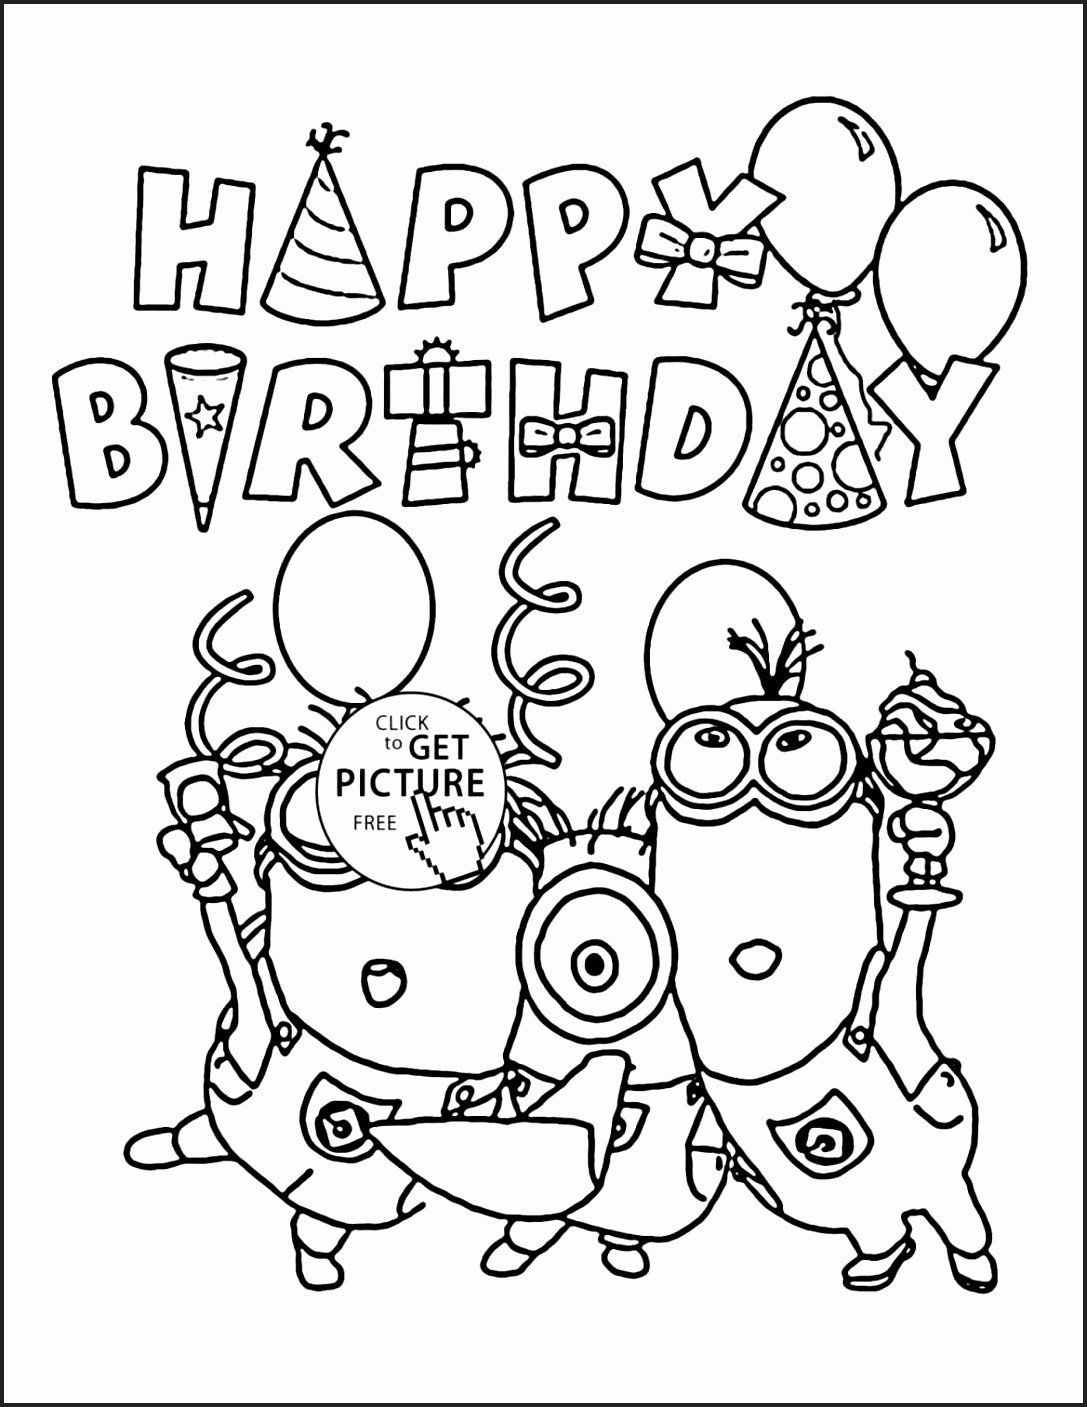 Happy Birthday Balloons Coloring Pages Coloring 100d10a100e10f10a A10